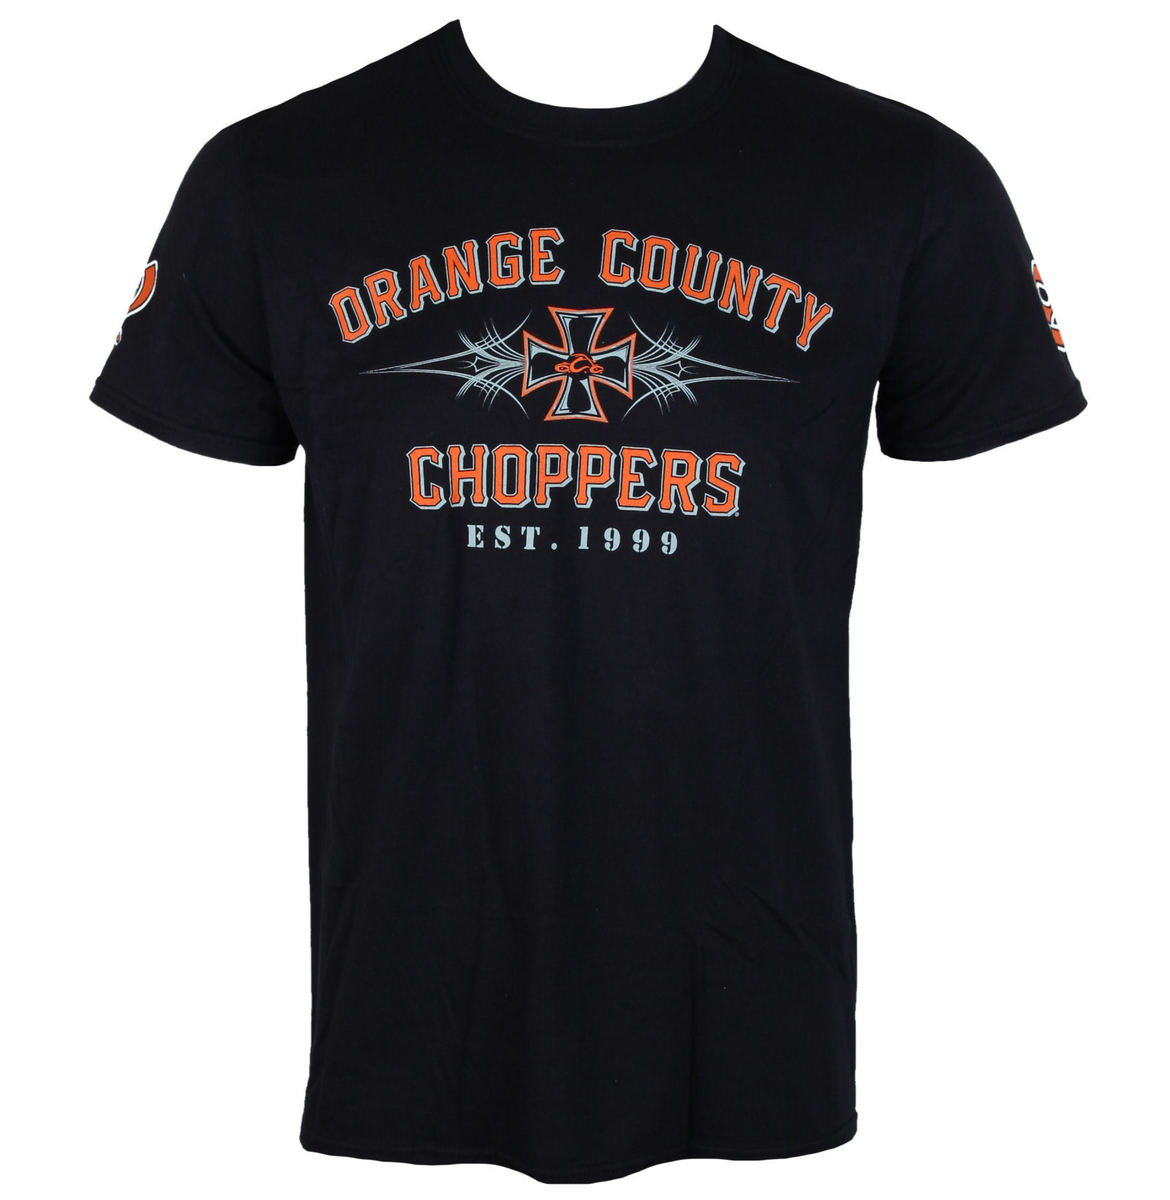 ORANGE COUNTY CHOPPERS 99 černá